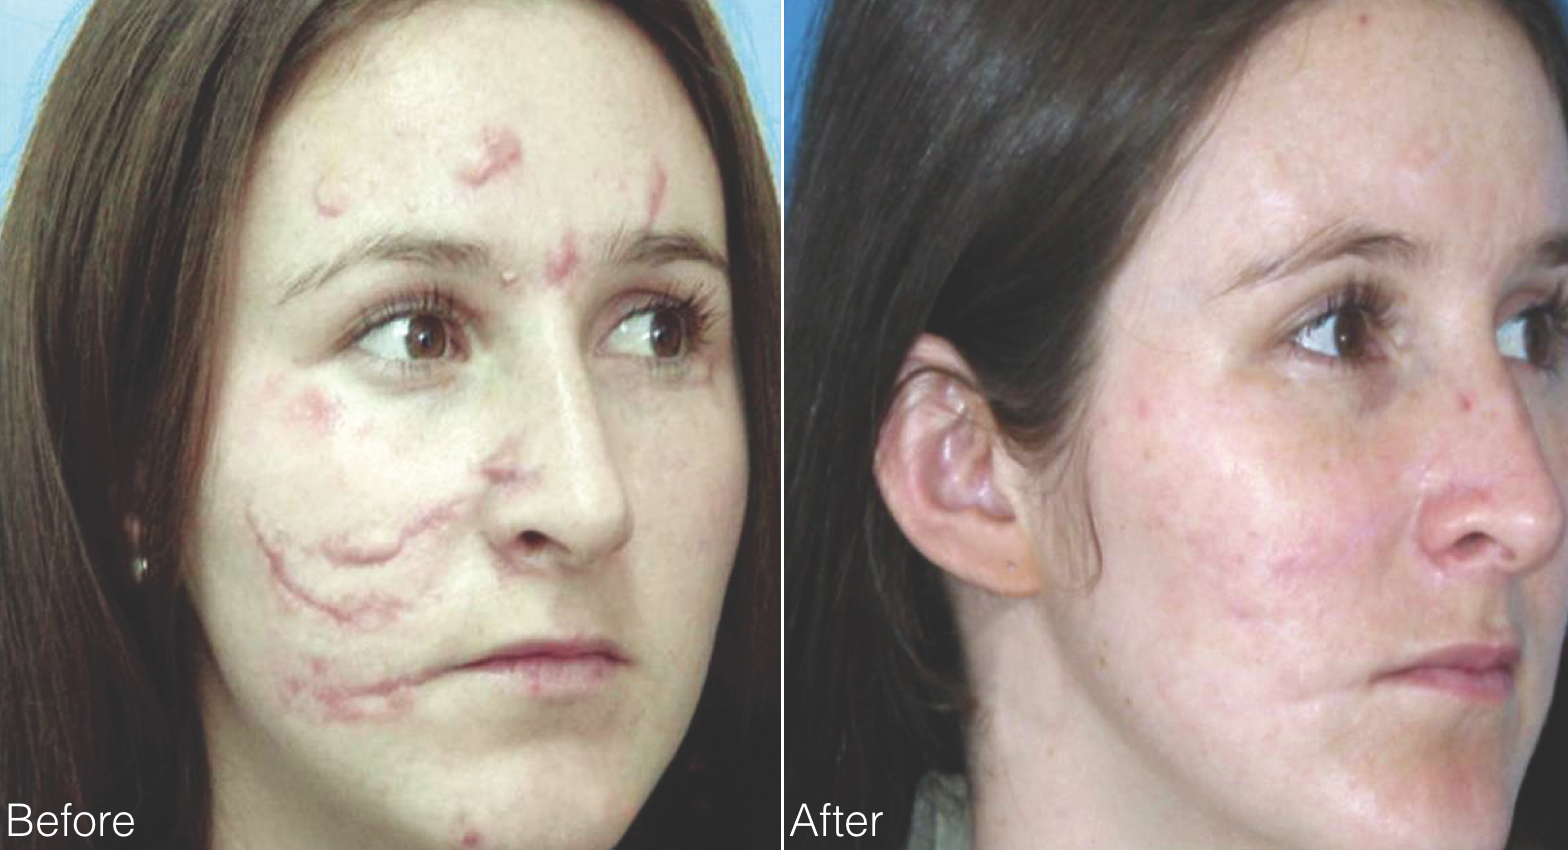 before and 9 months after treatment with eCO2